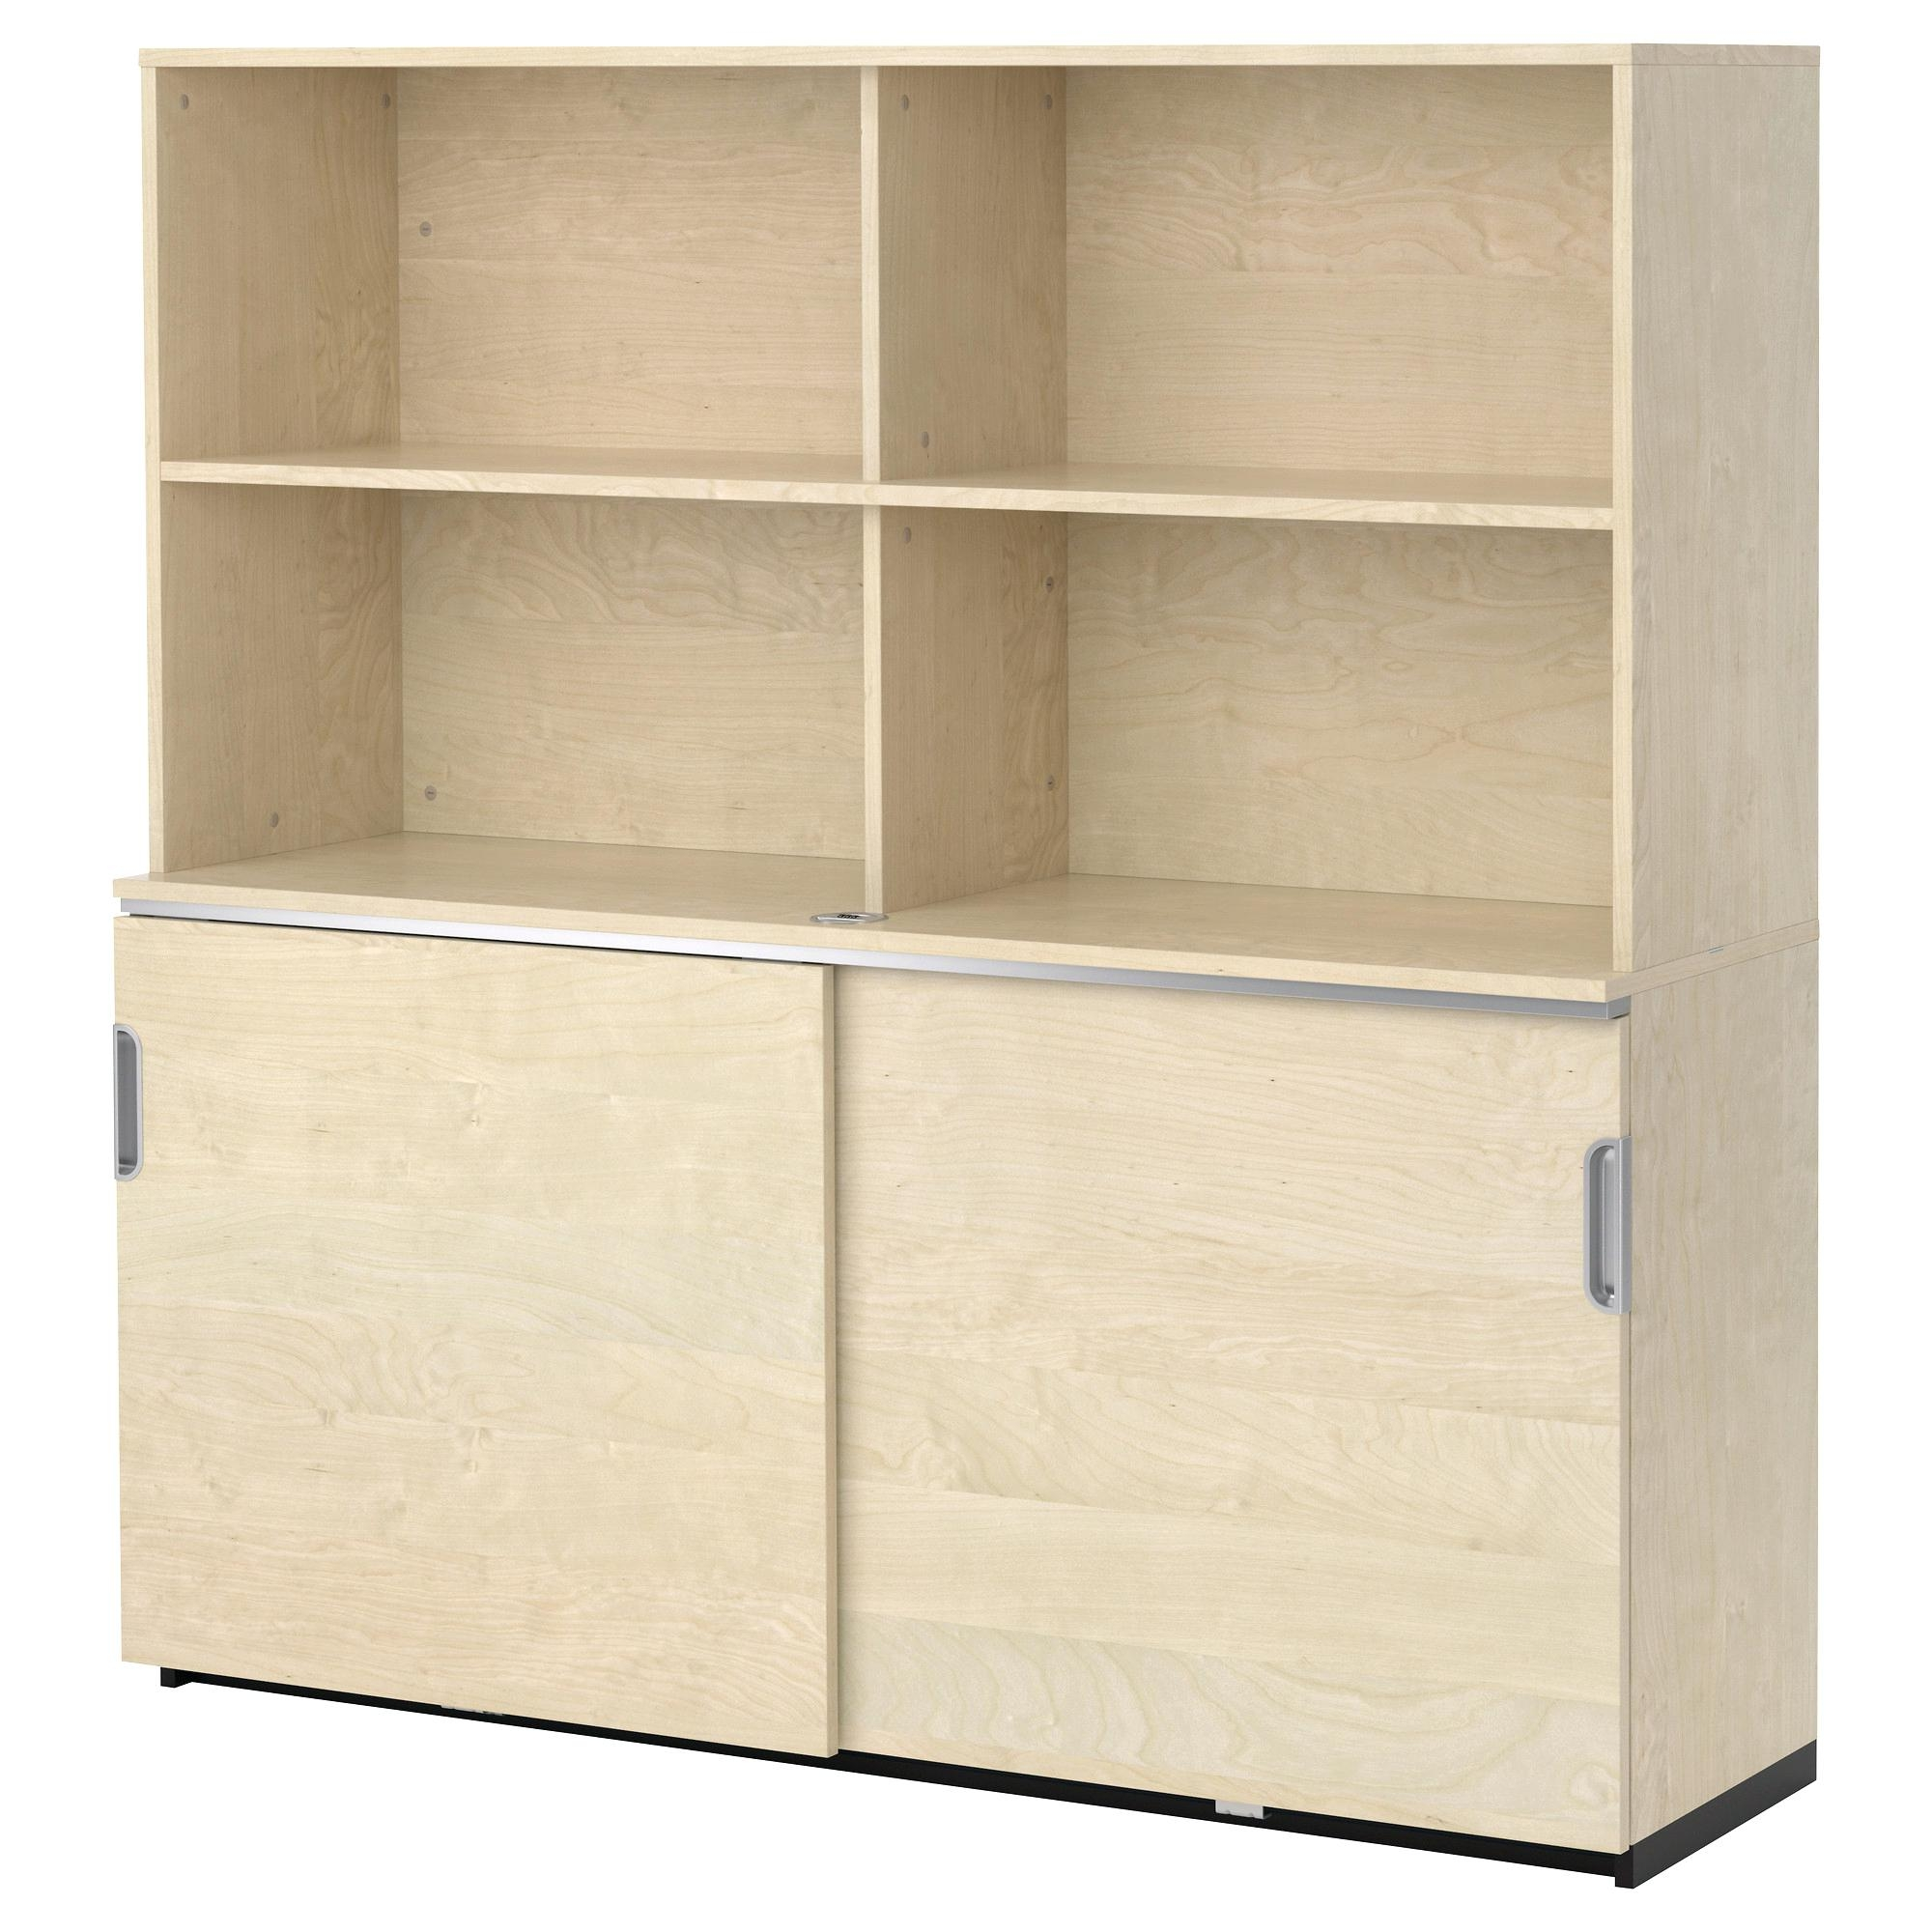 A White Tyngen Bathroom Storage Cabinet With Shelves And Throughout Large Cupboard With Shelves (#2 of 15)